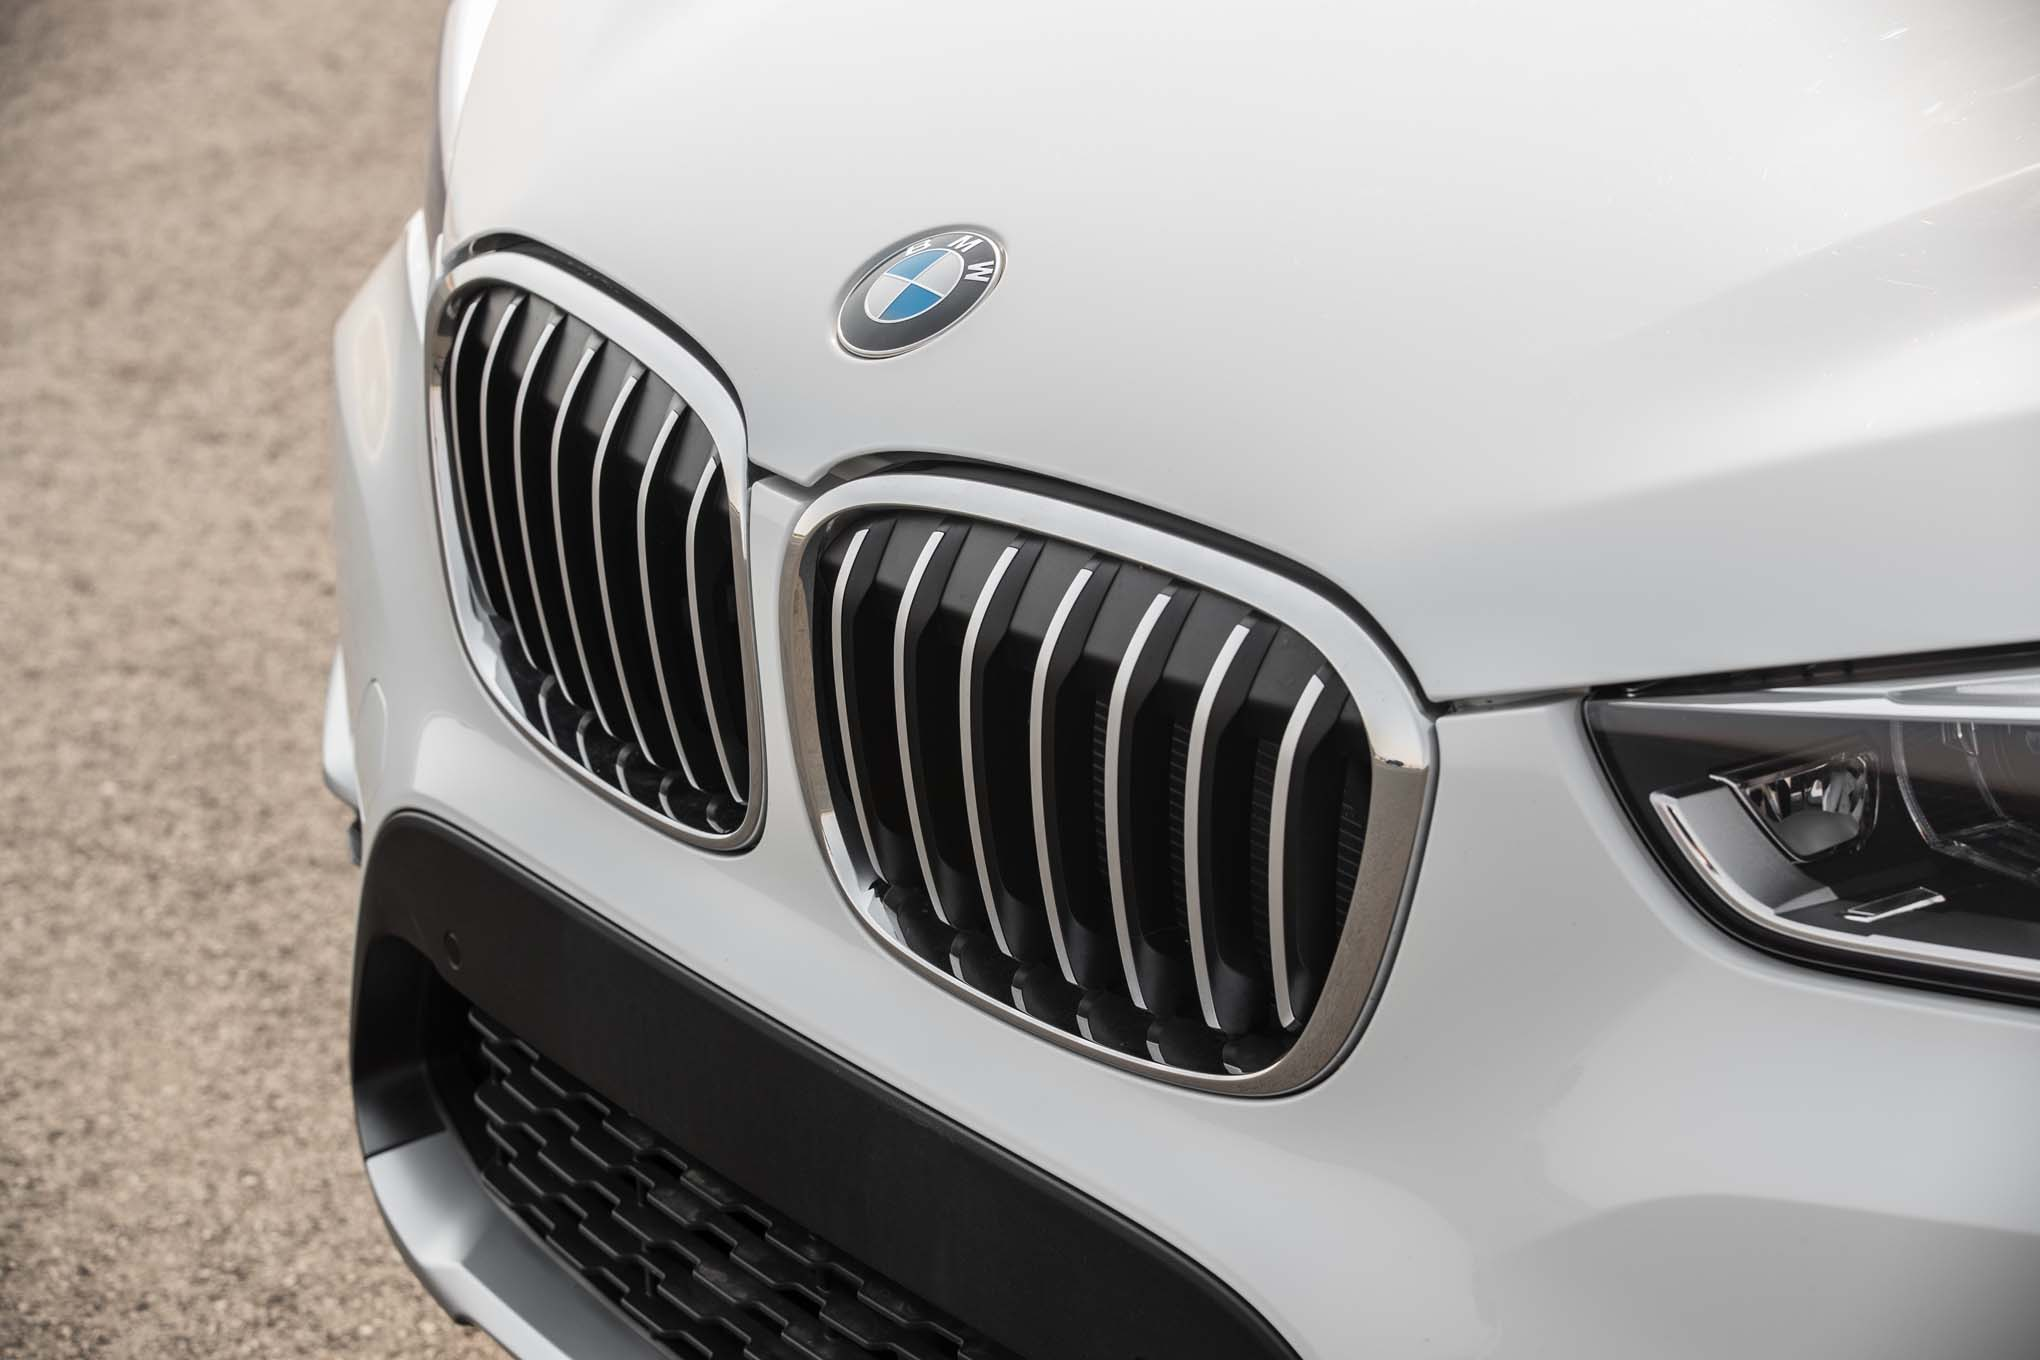 2017 BMW X1 XDrive28i Exterior View Grille (View 18 of 23)